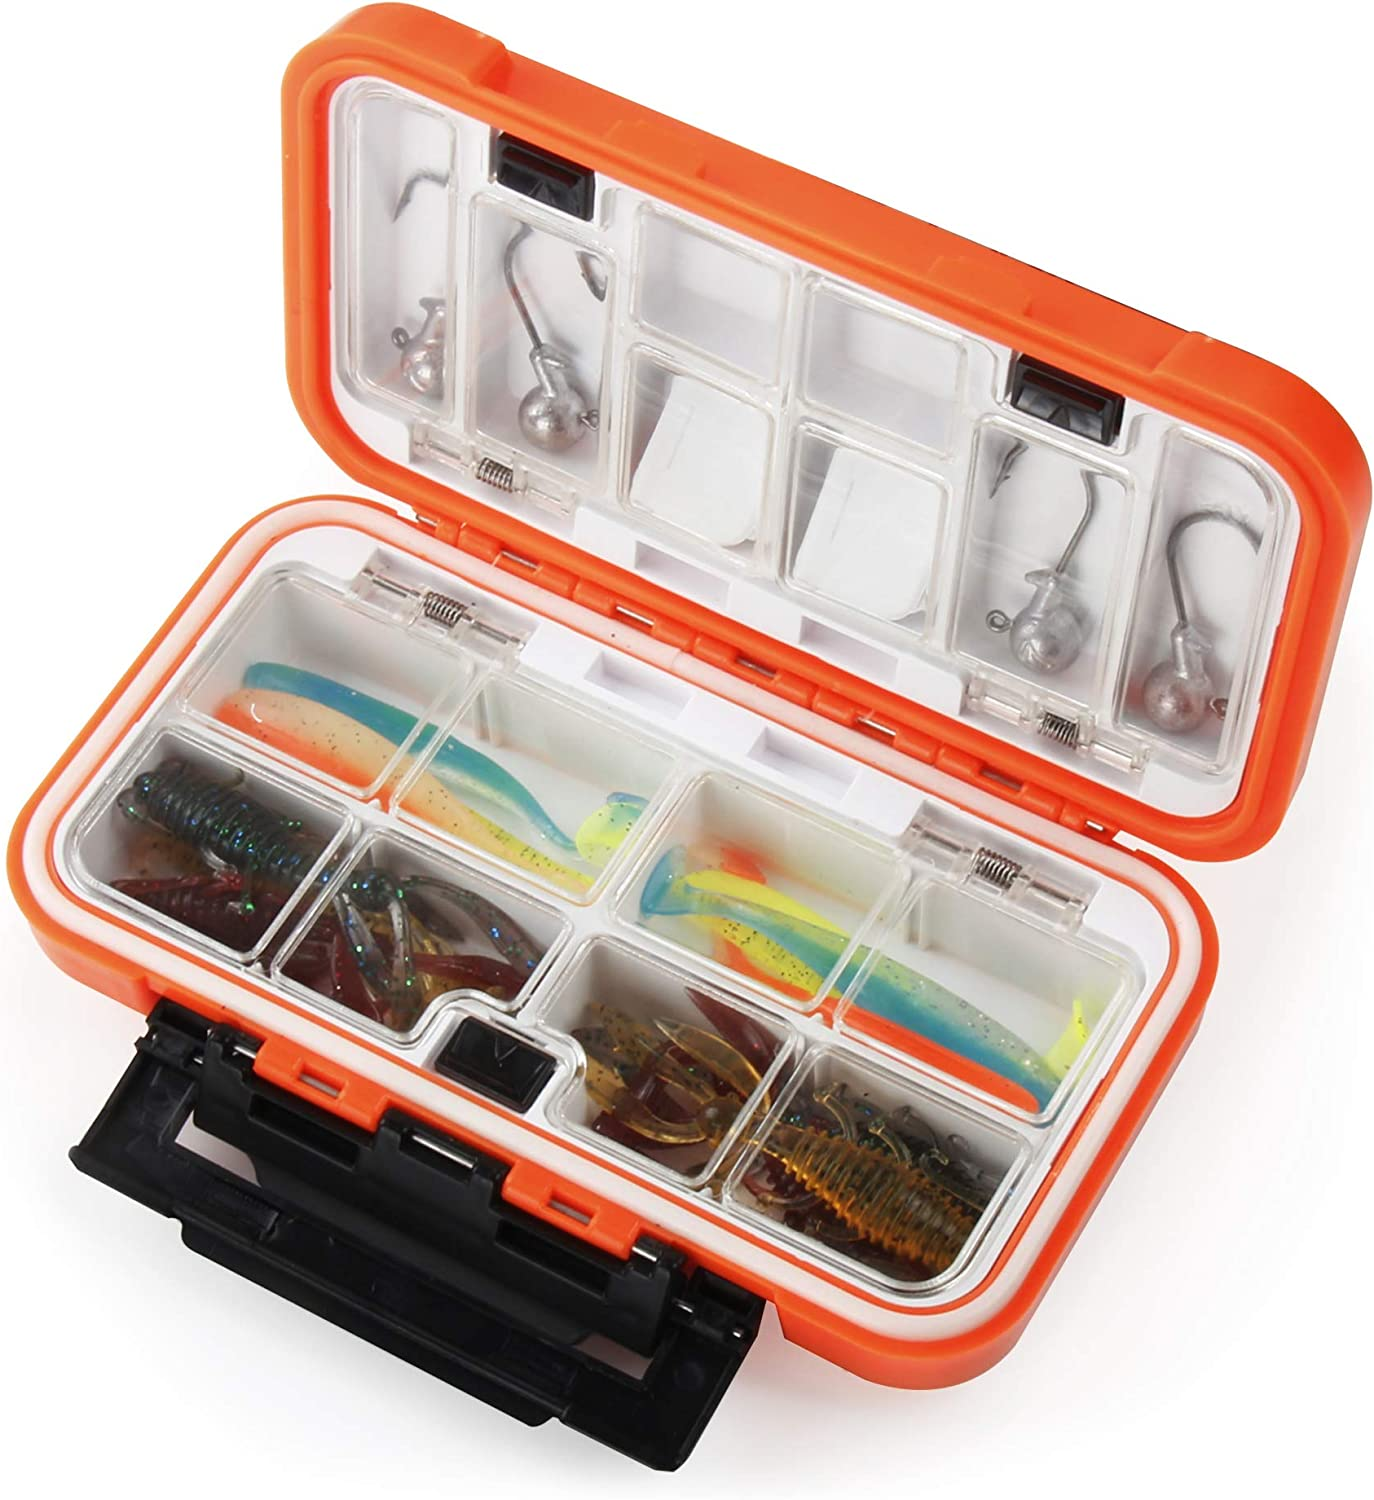 REAWOW Sea Fishing Lure Box Waterproof Fishing Tackle Organizer Boxes With Compartments Fly Boxes For Fly and Ice Fishing Small Fishing Tackle Box With Tackle Included